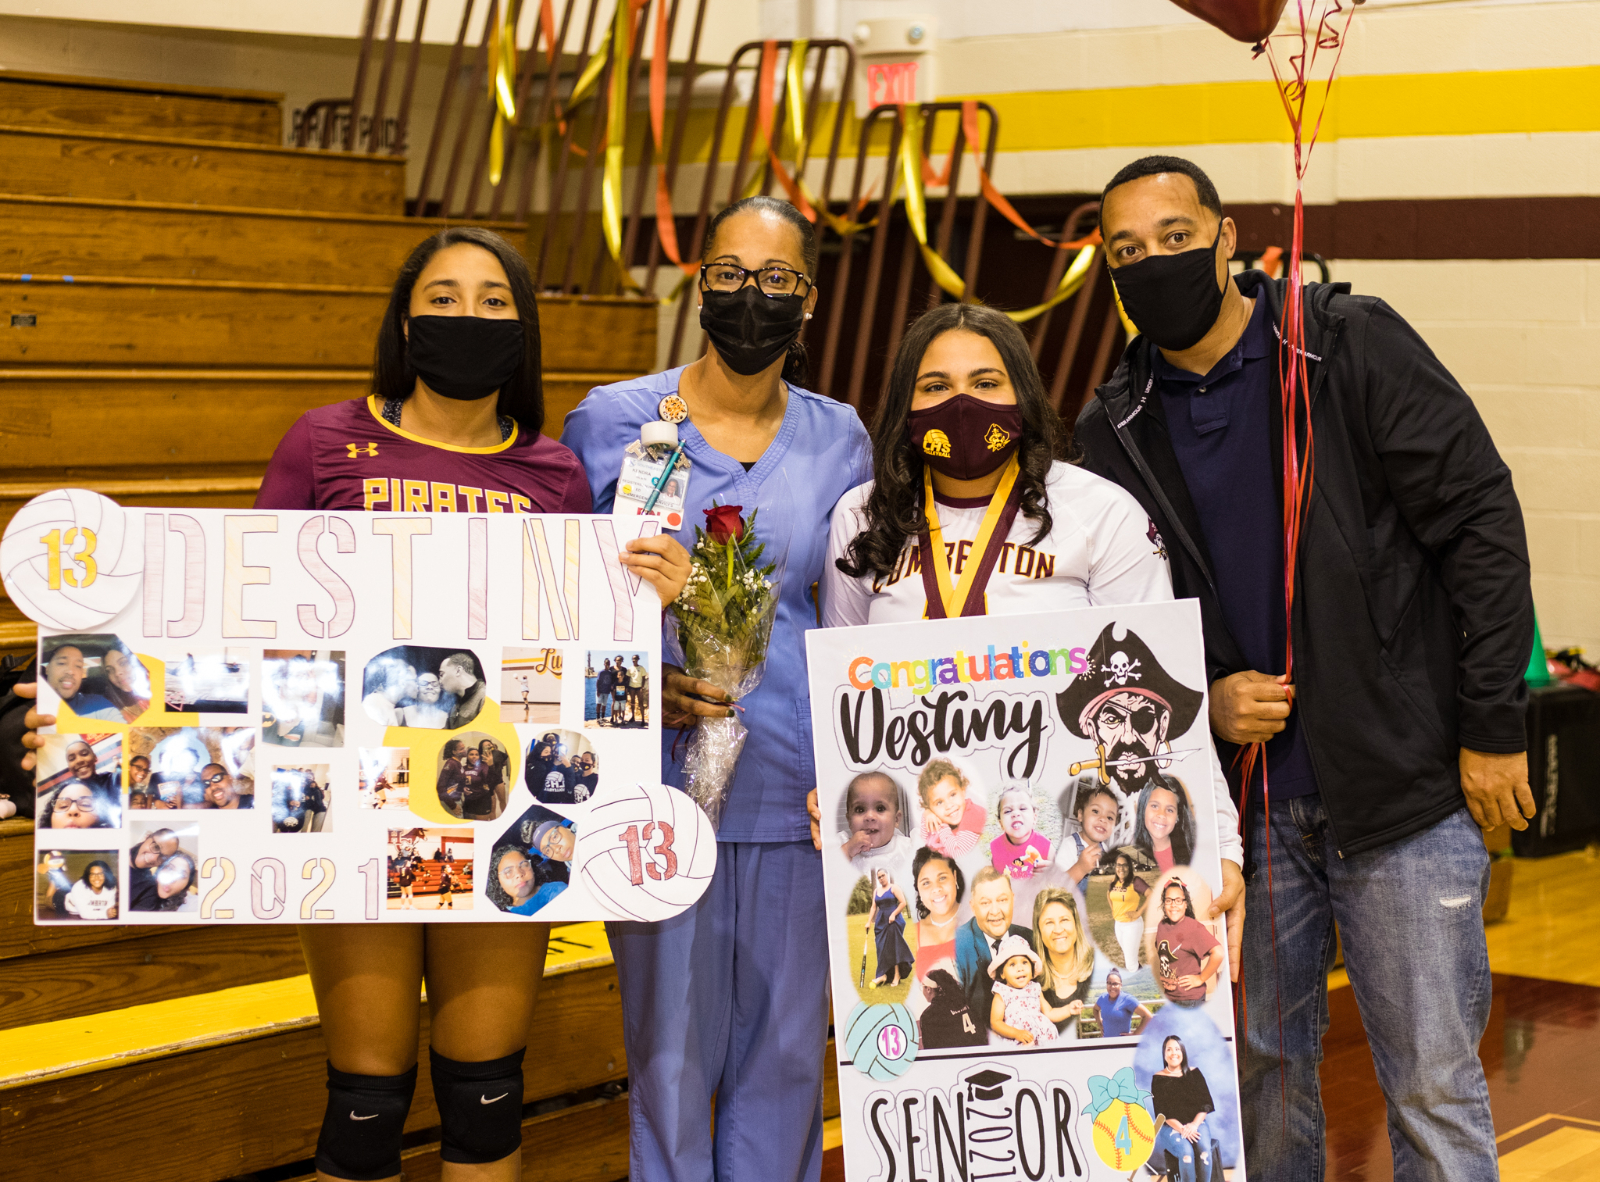 Pirate Volleyball Senior Night Gallery 1 of 3